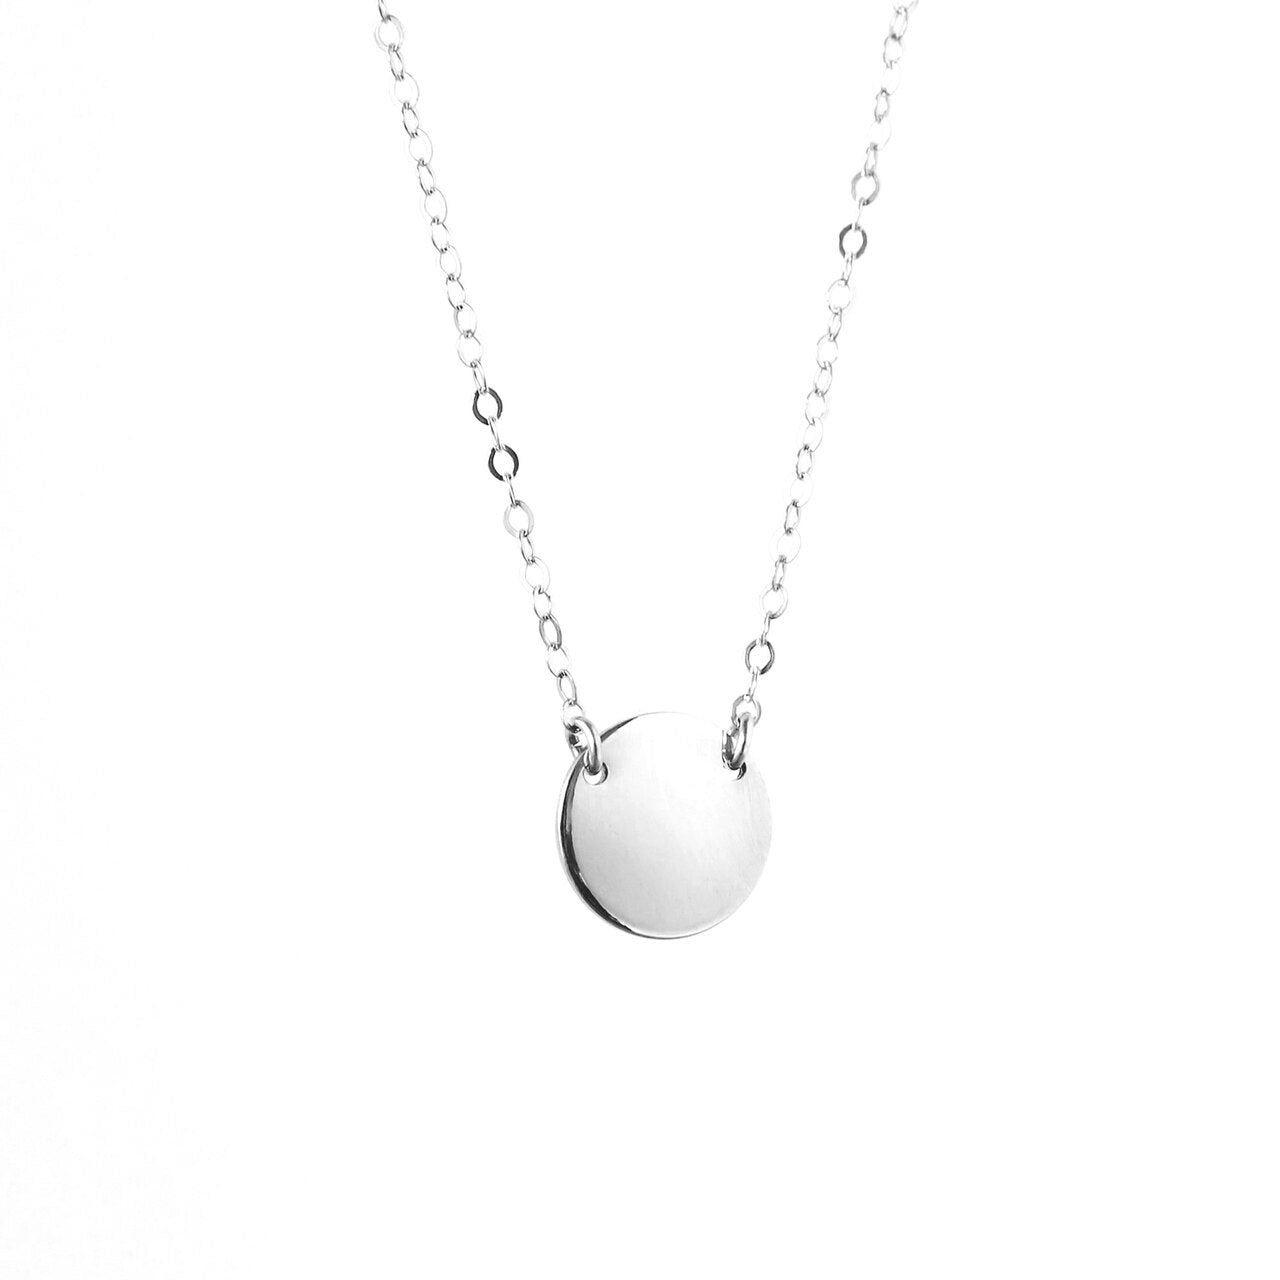 Silver Mini Zola Disc Necklace - MBM